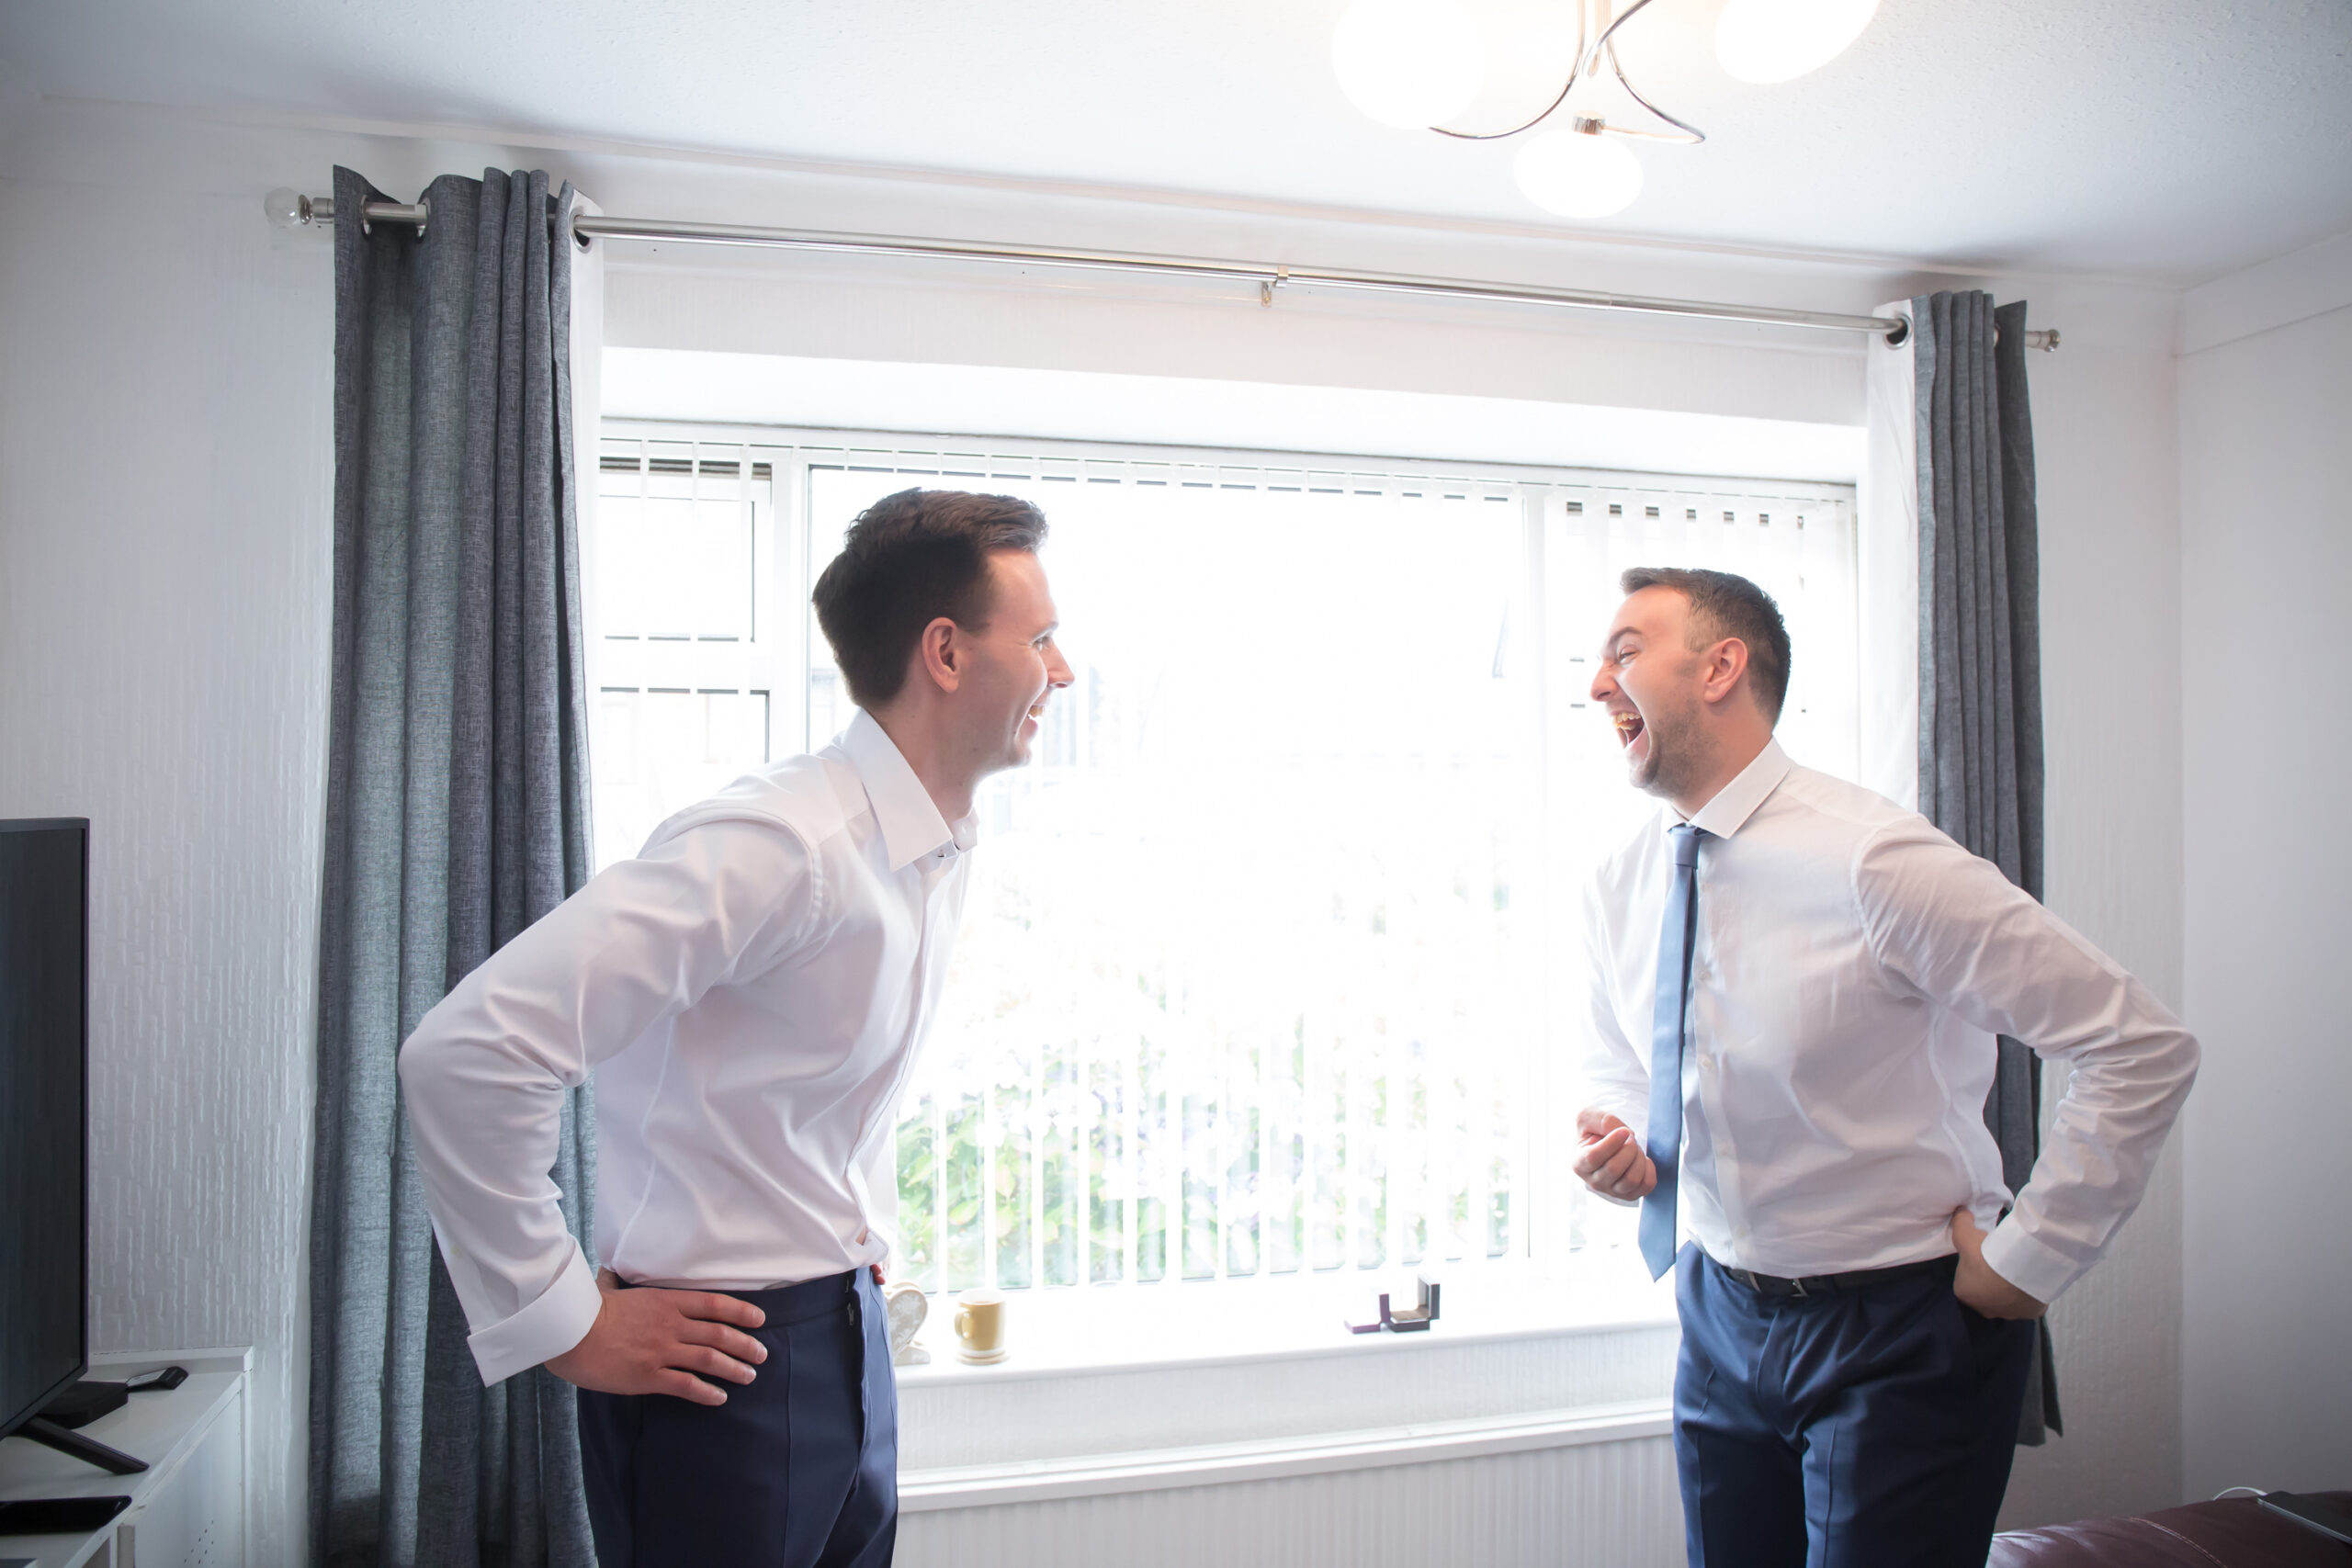 the best man and groom laugh together